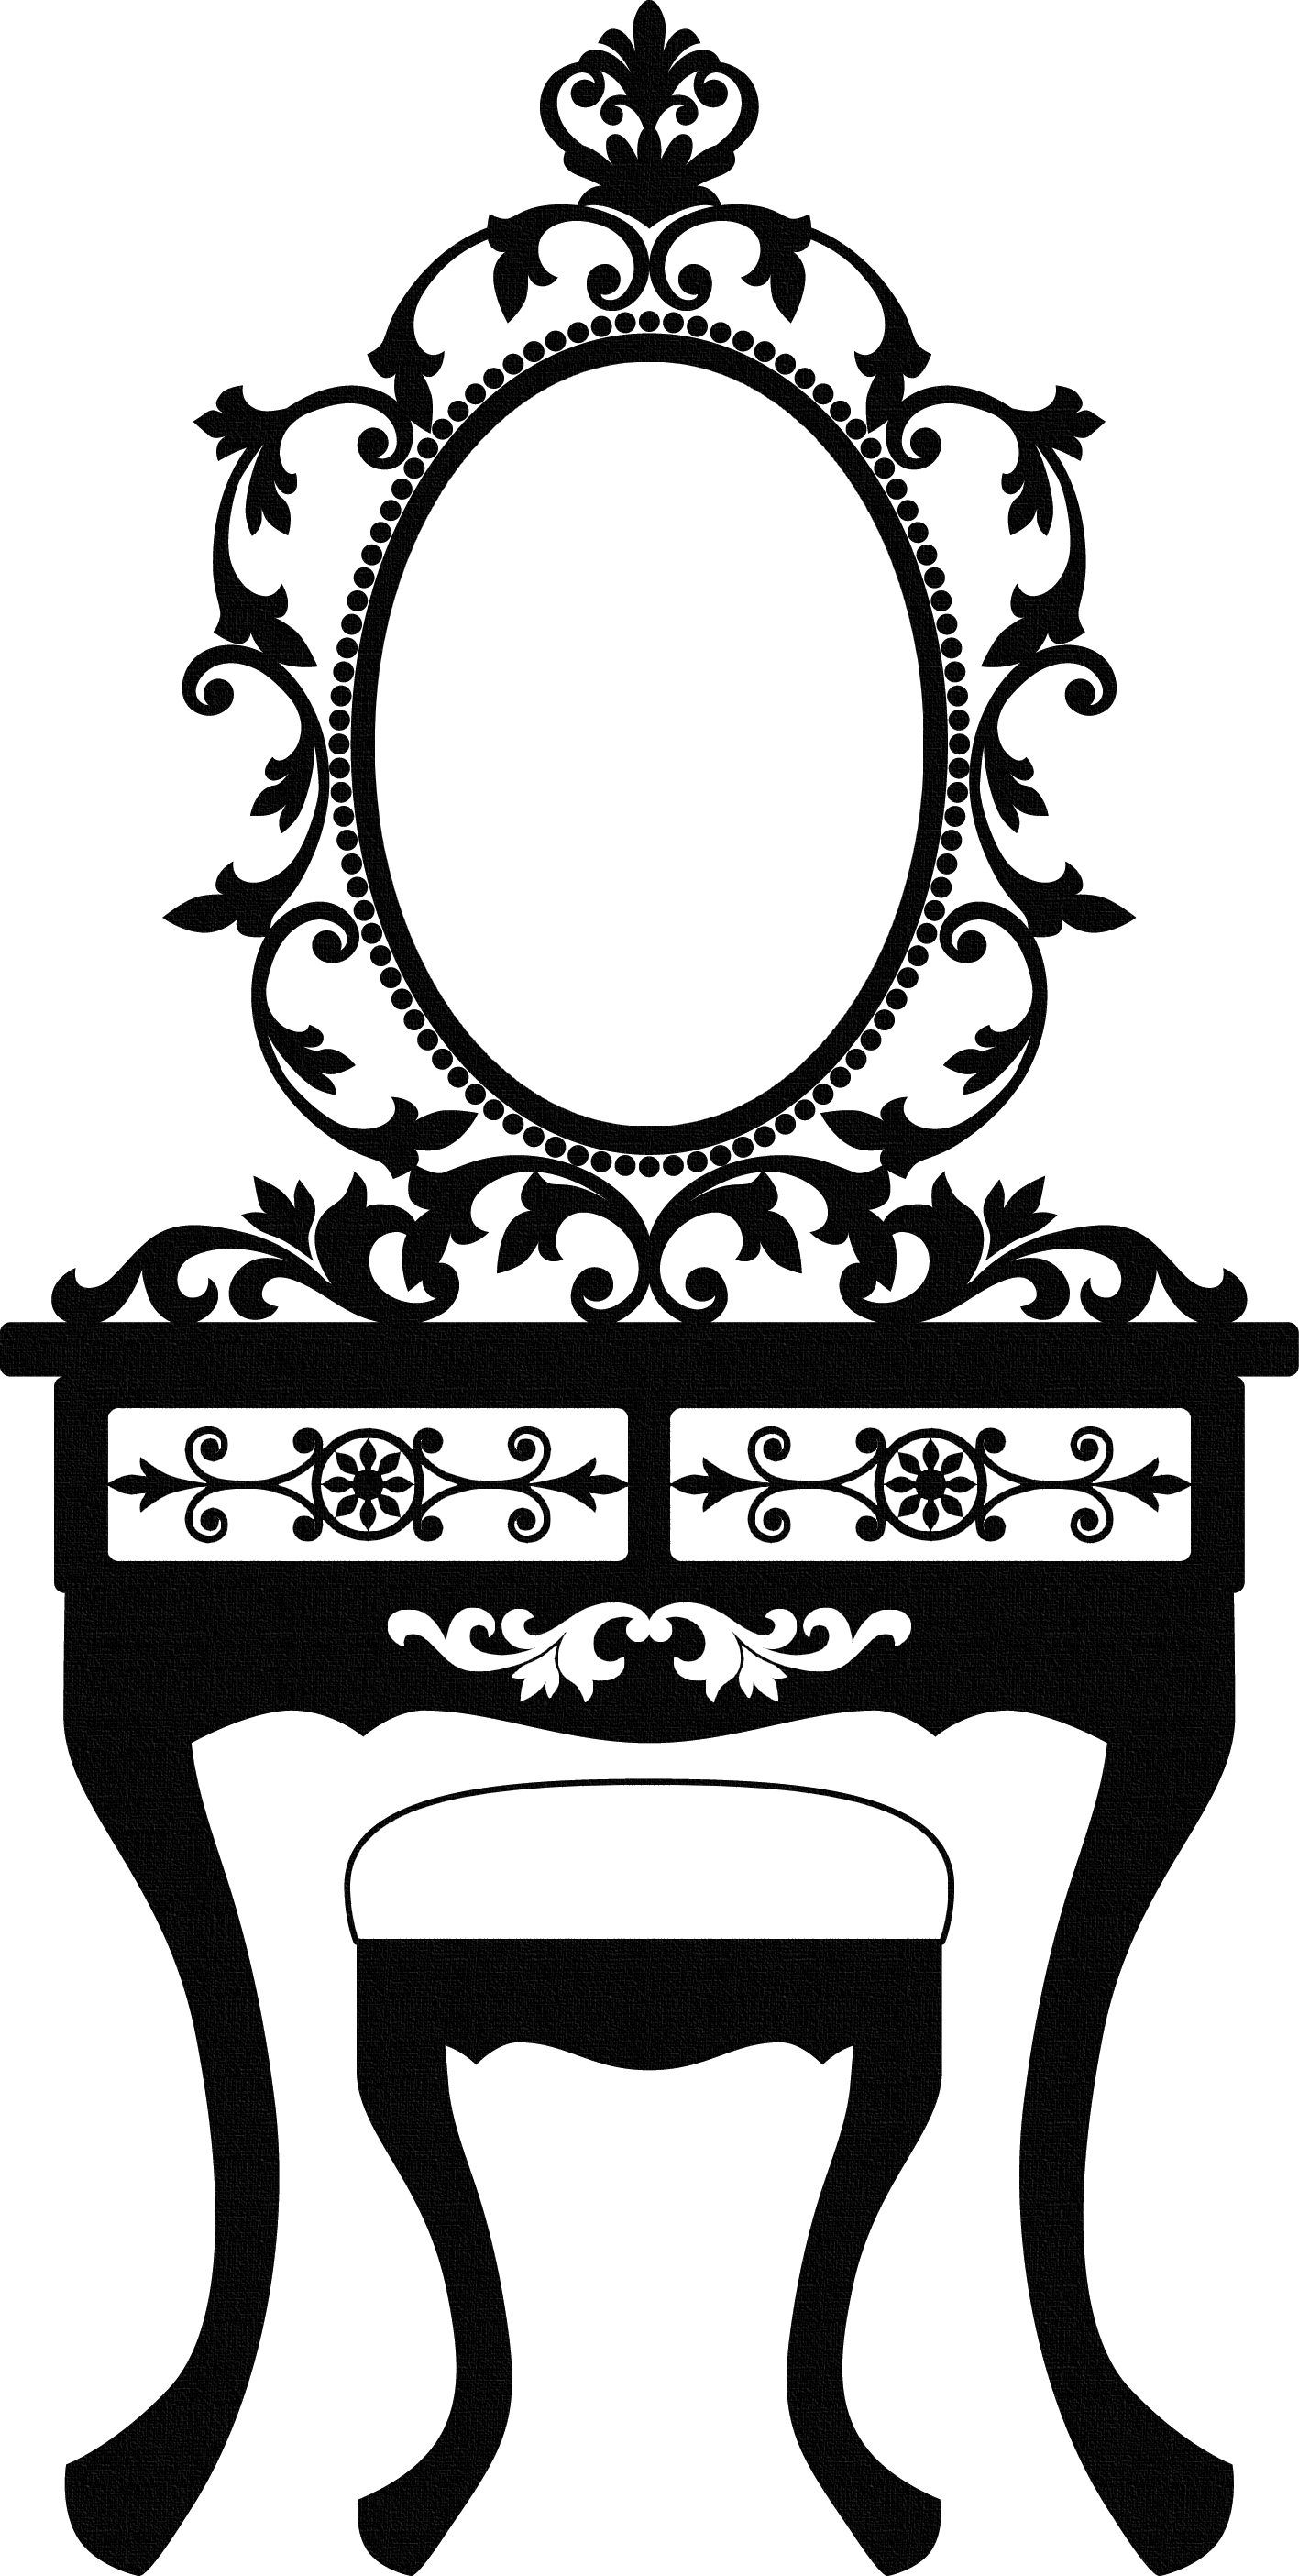 freeuse stock cameo drawing vintage #91204770